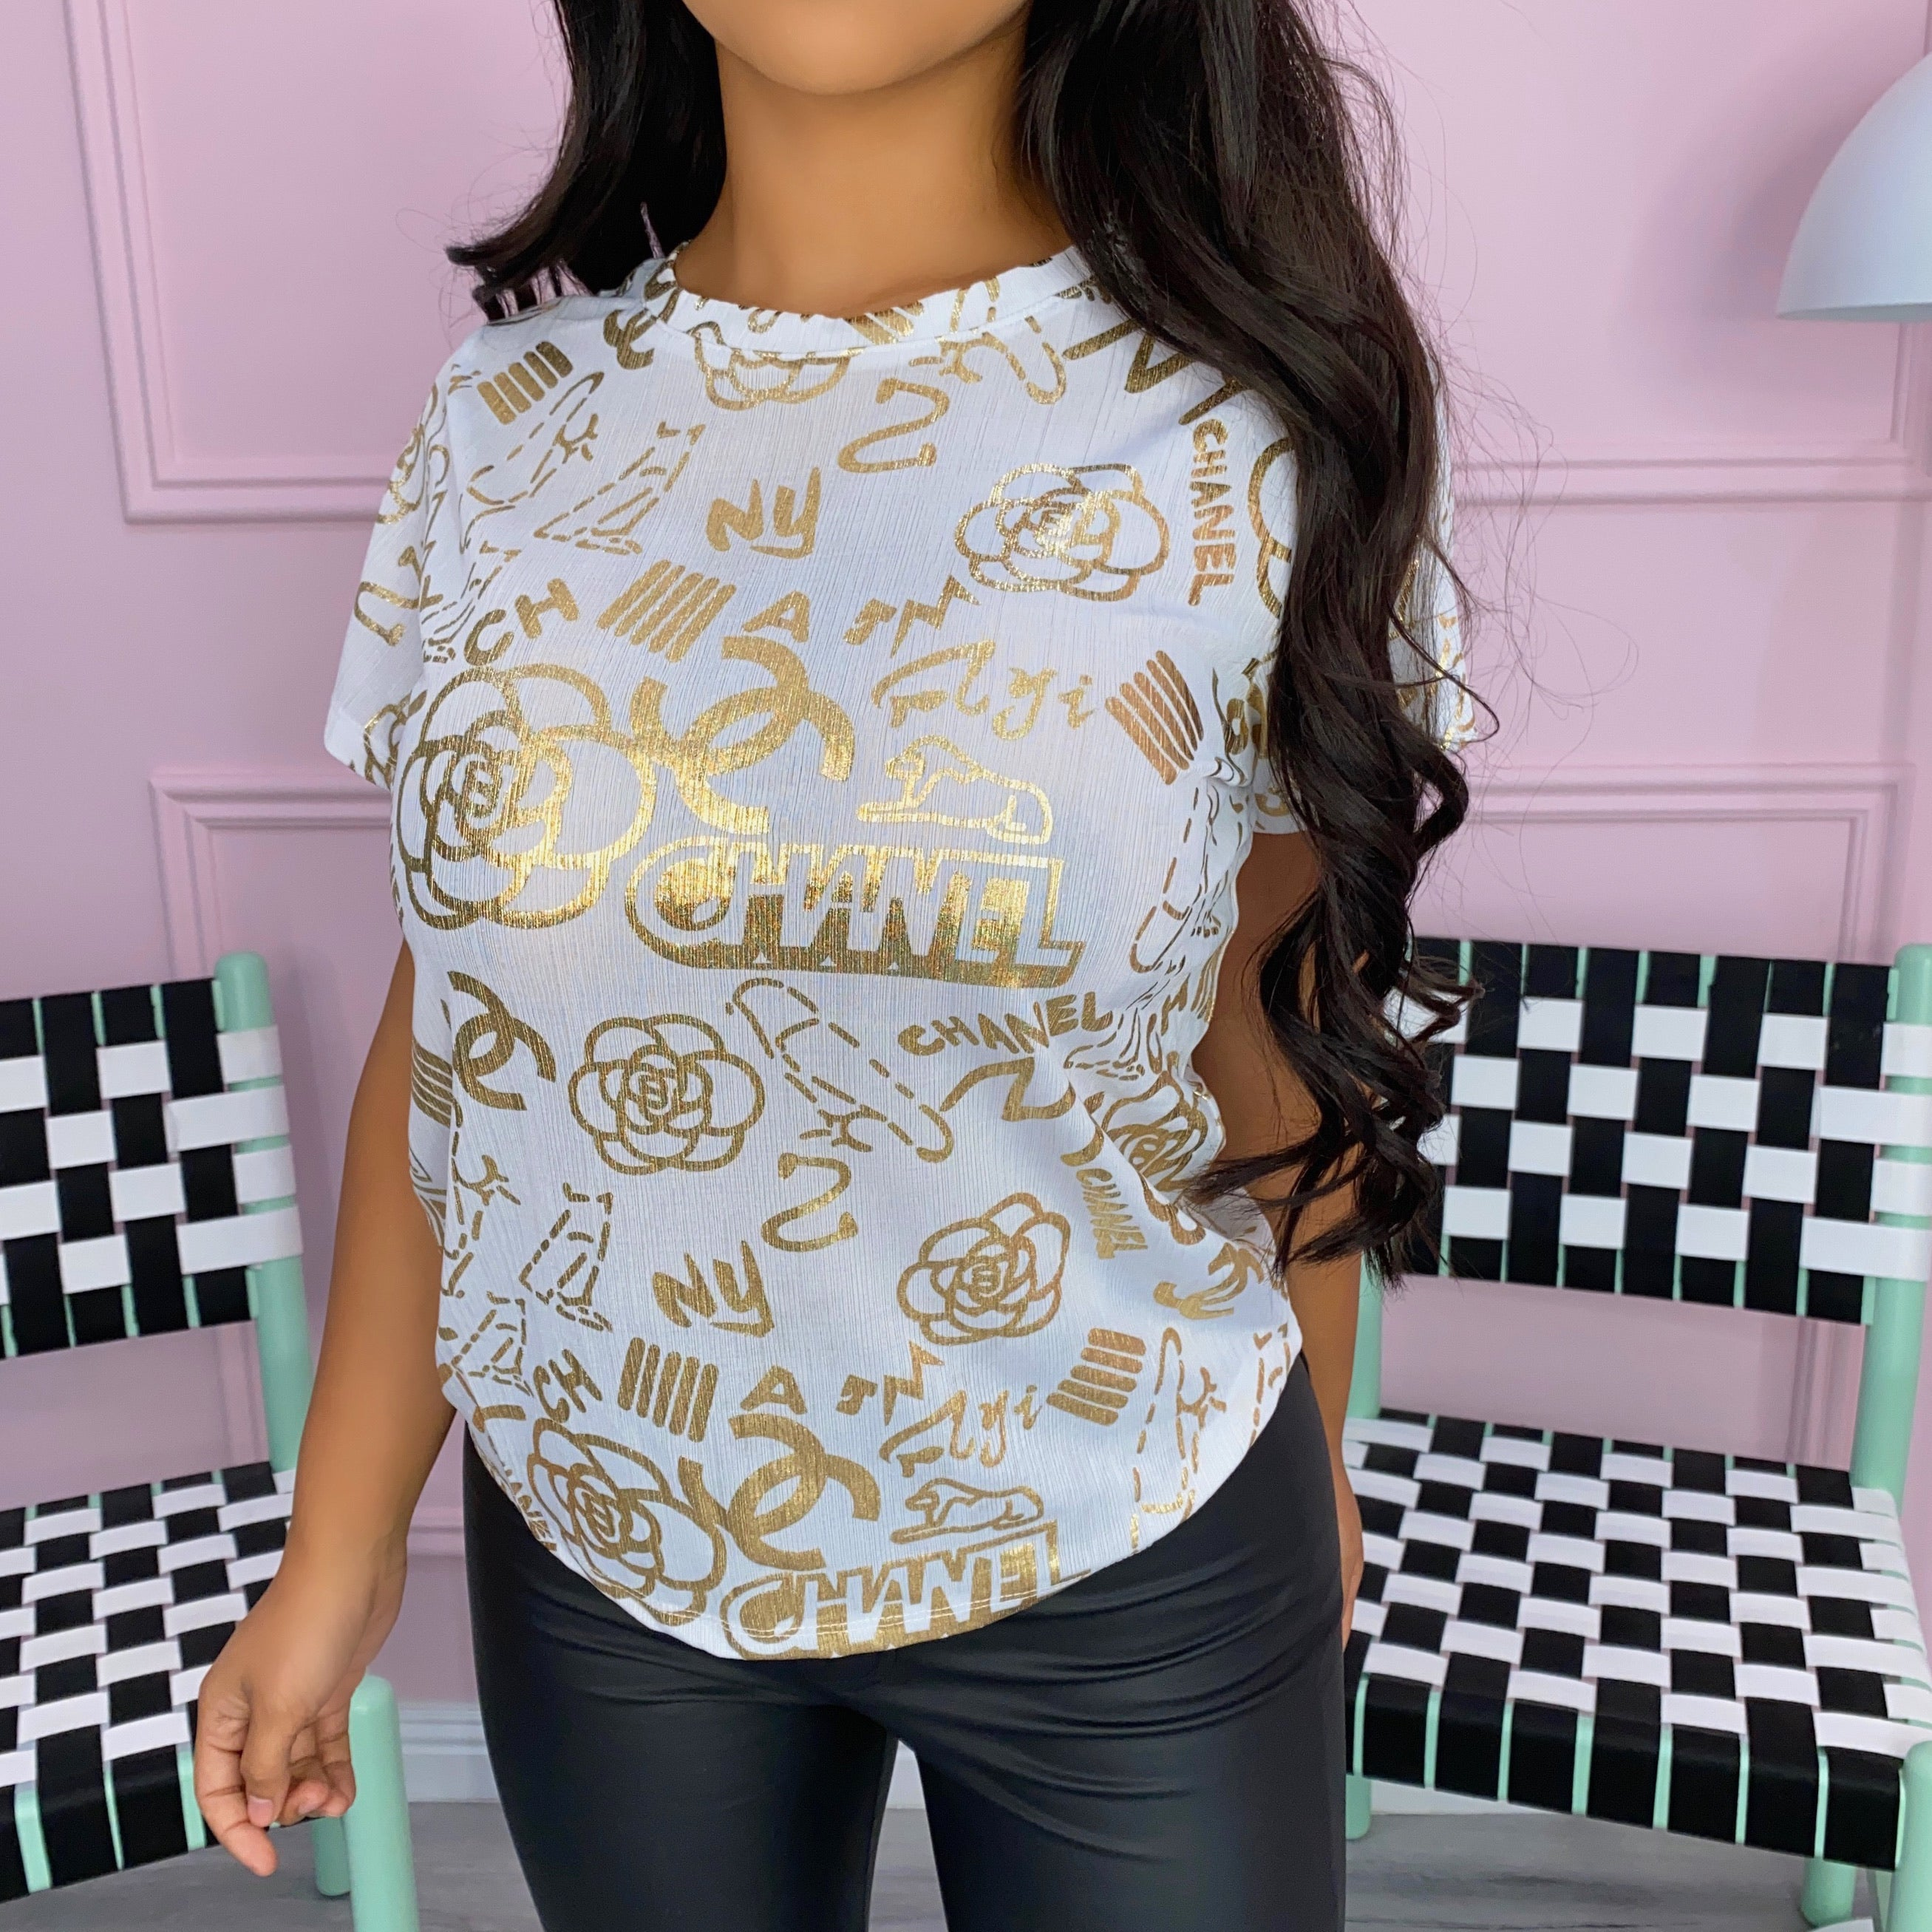 White/gold Chantel top